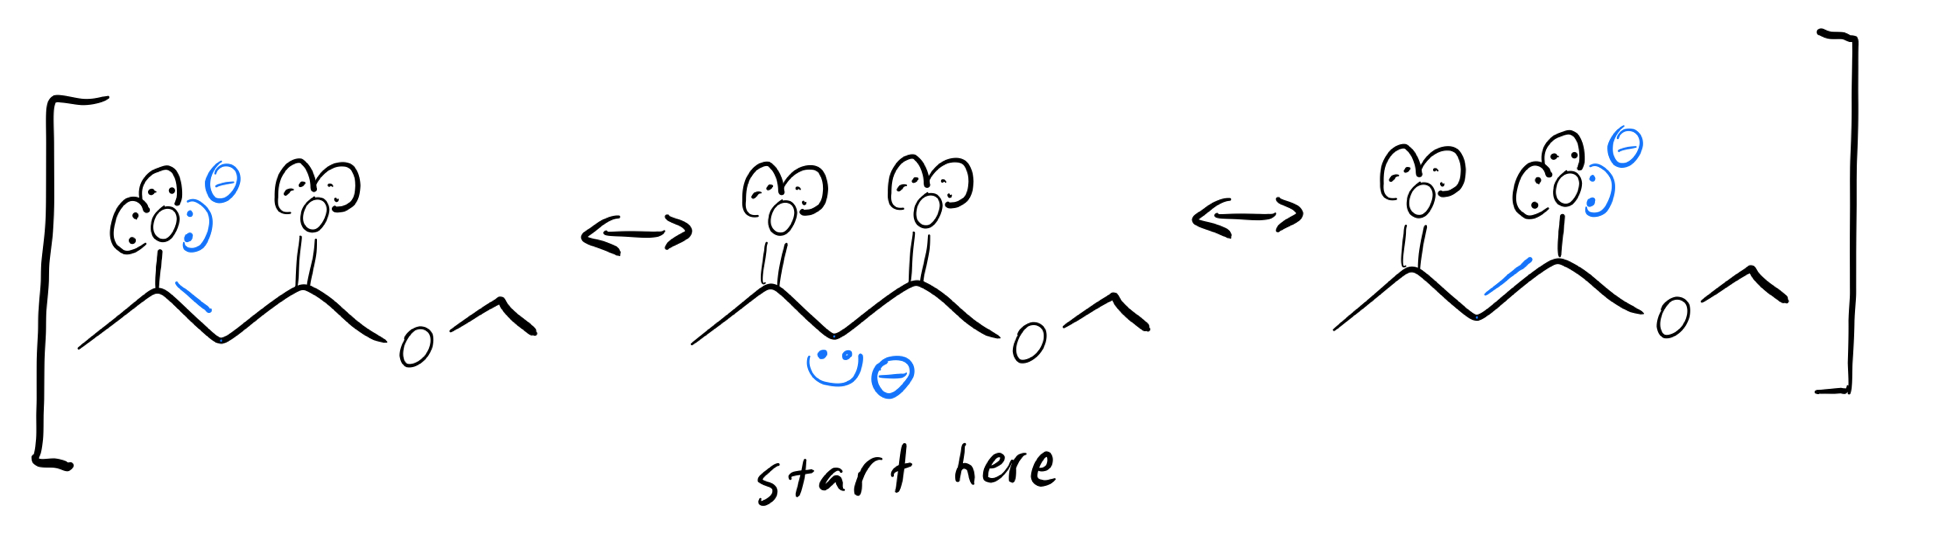 blue-enolate-resonance-structures